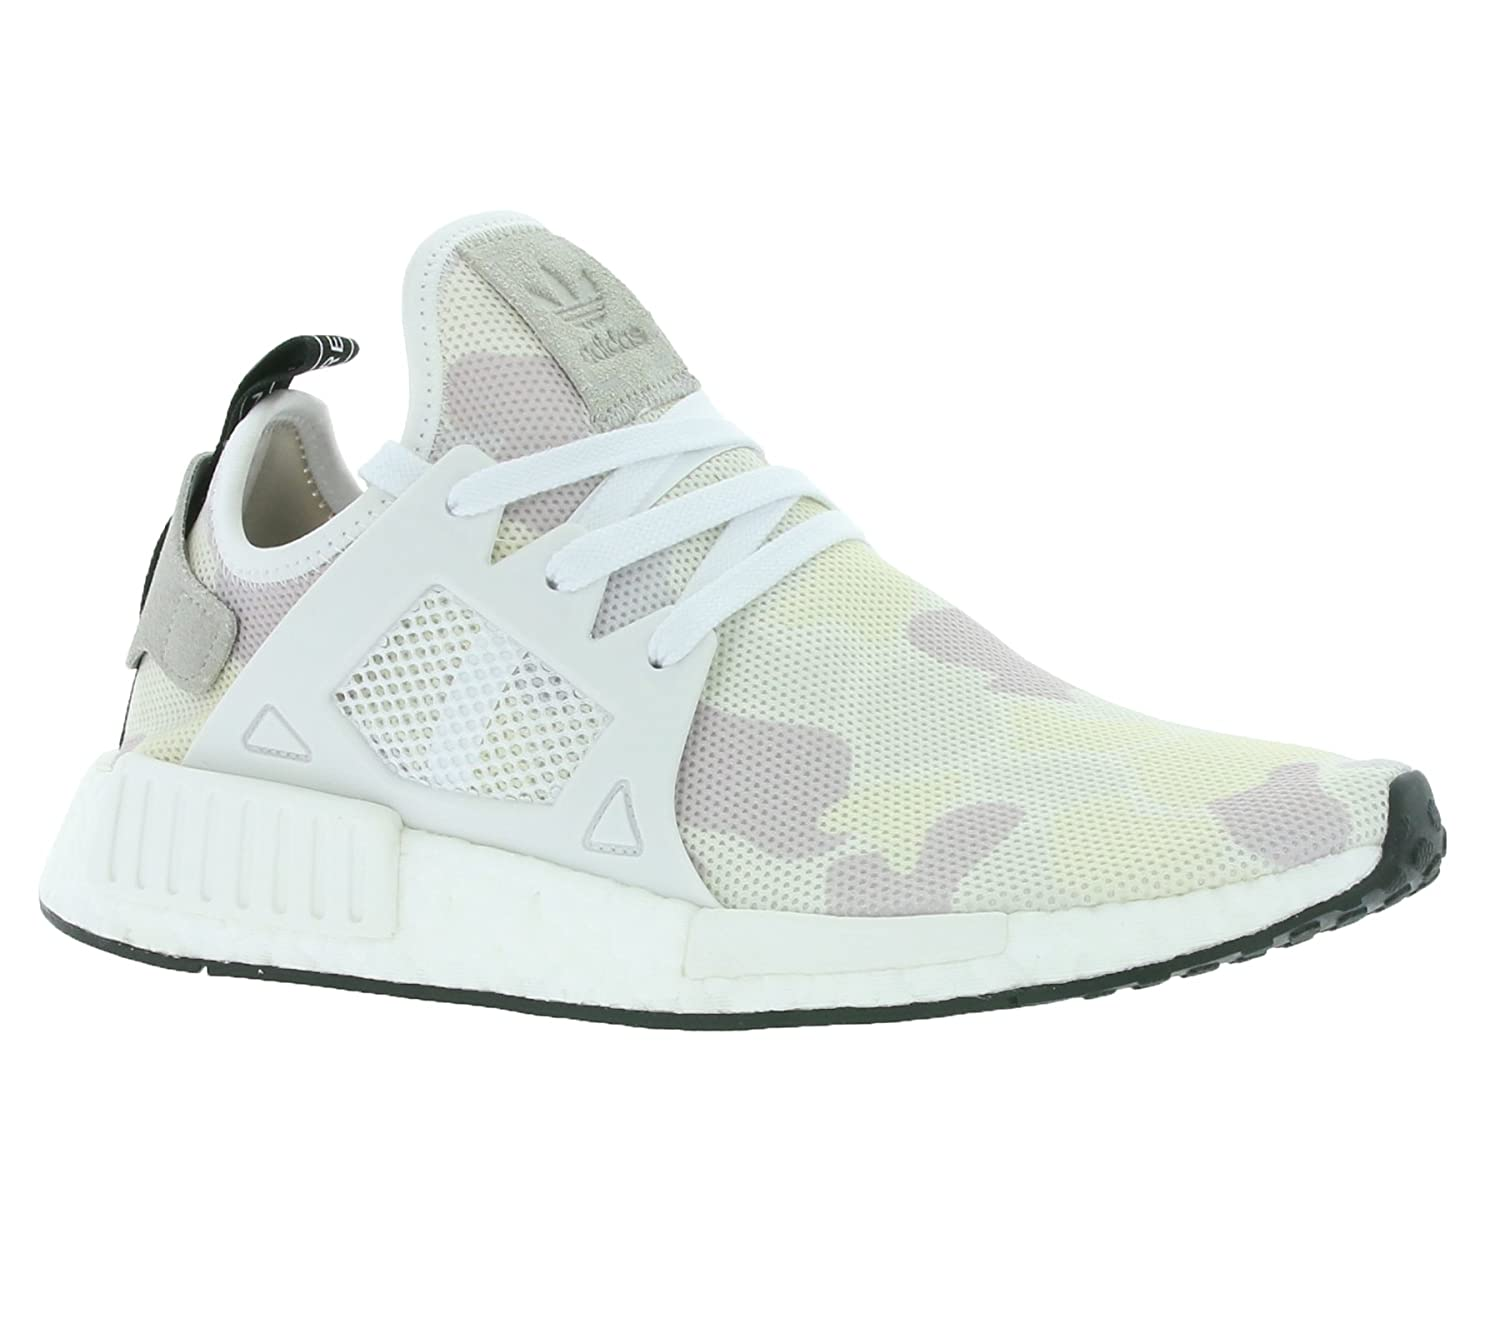 the best attitude 383bd 20b31 Amazon.com | Adidas NMD XR1 BA723 (7, White Camo) | Athletic